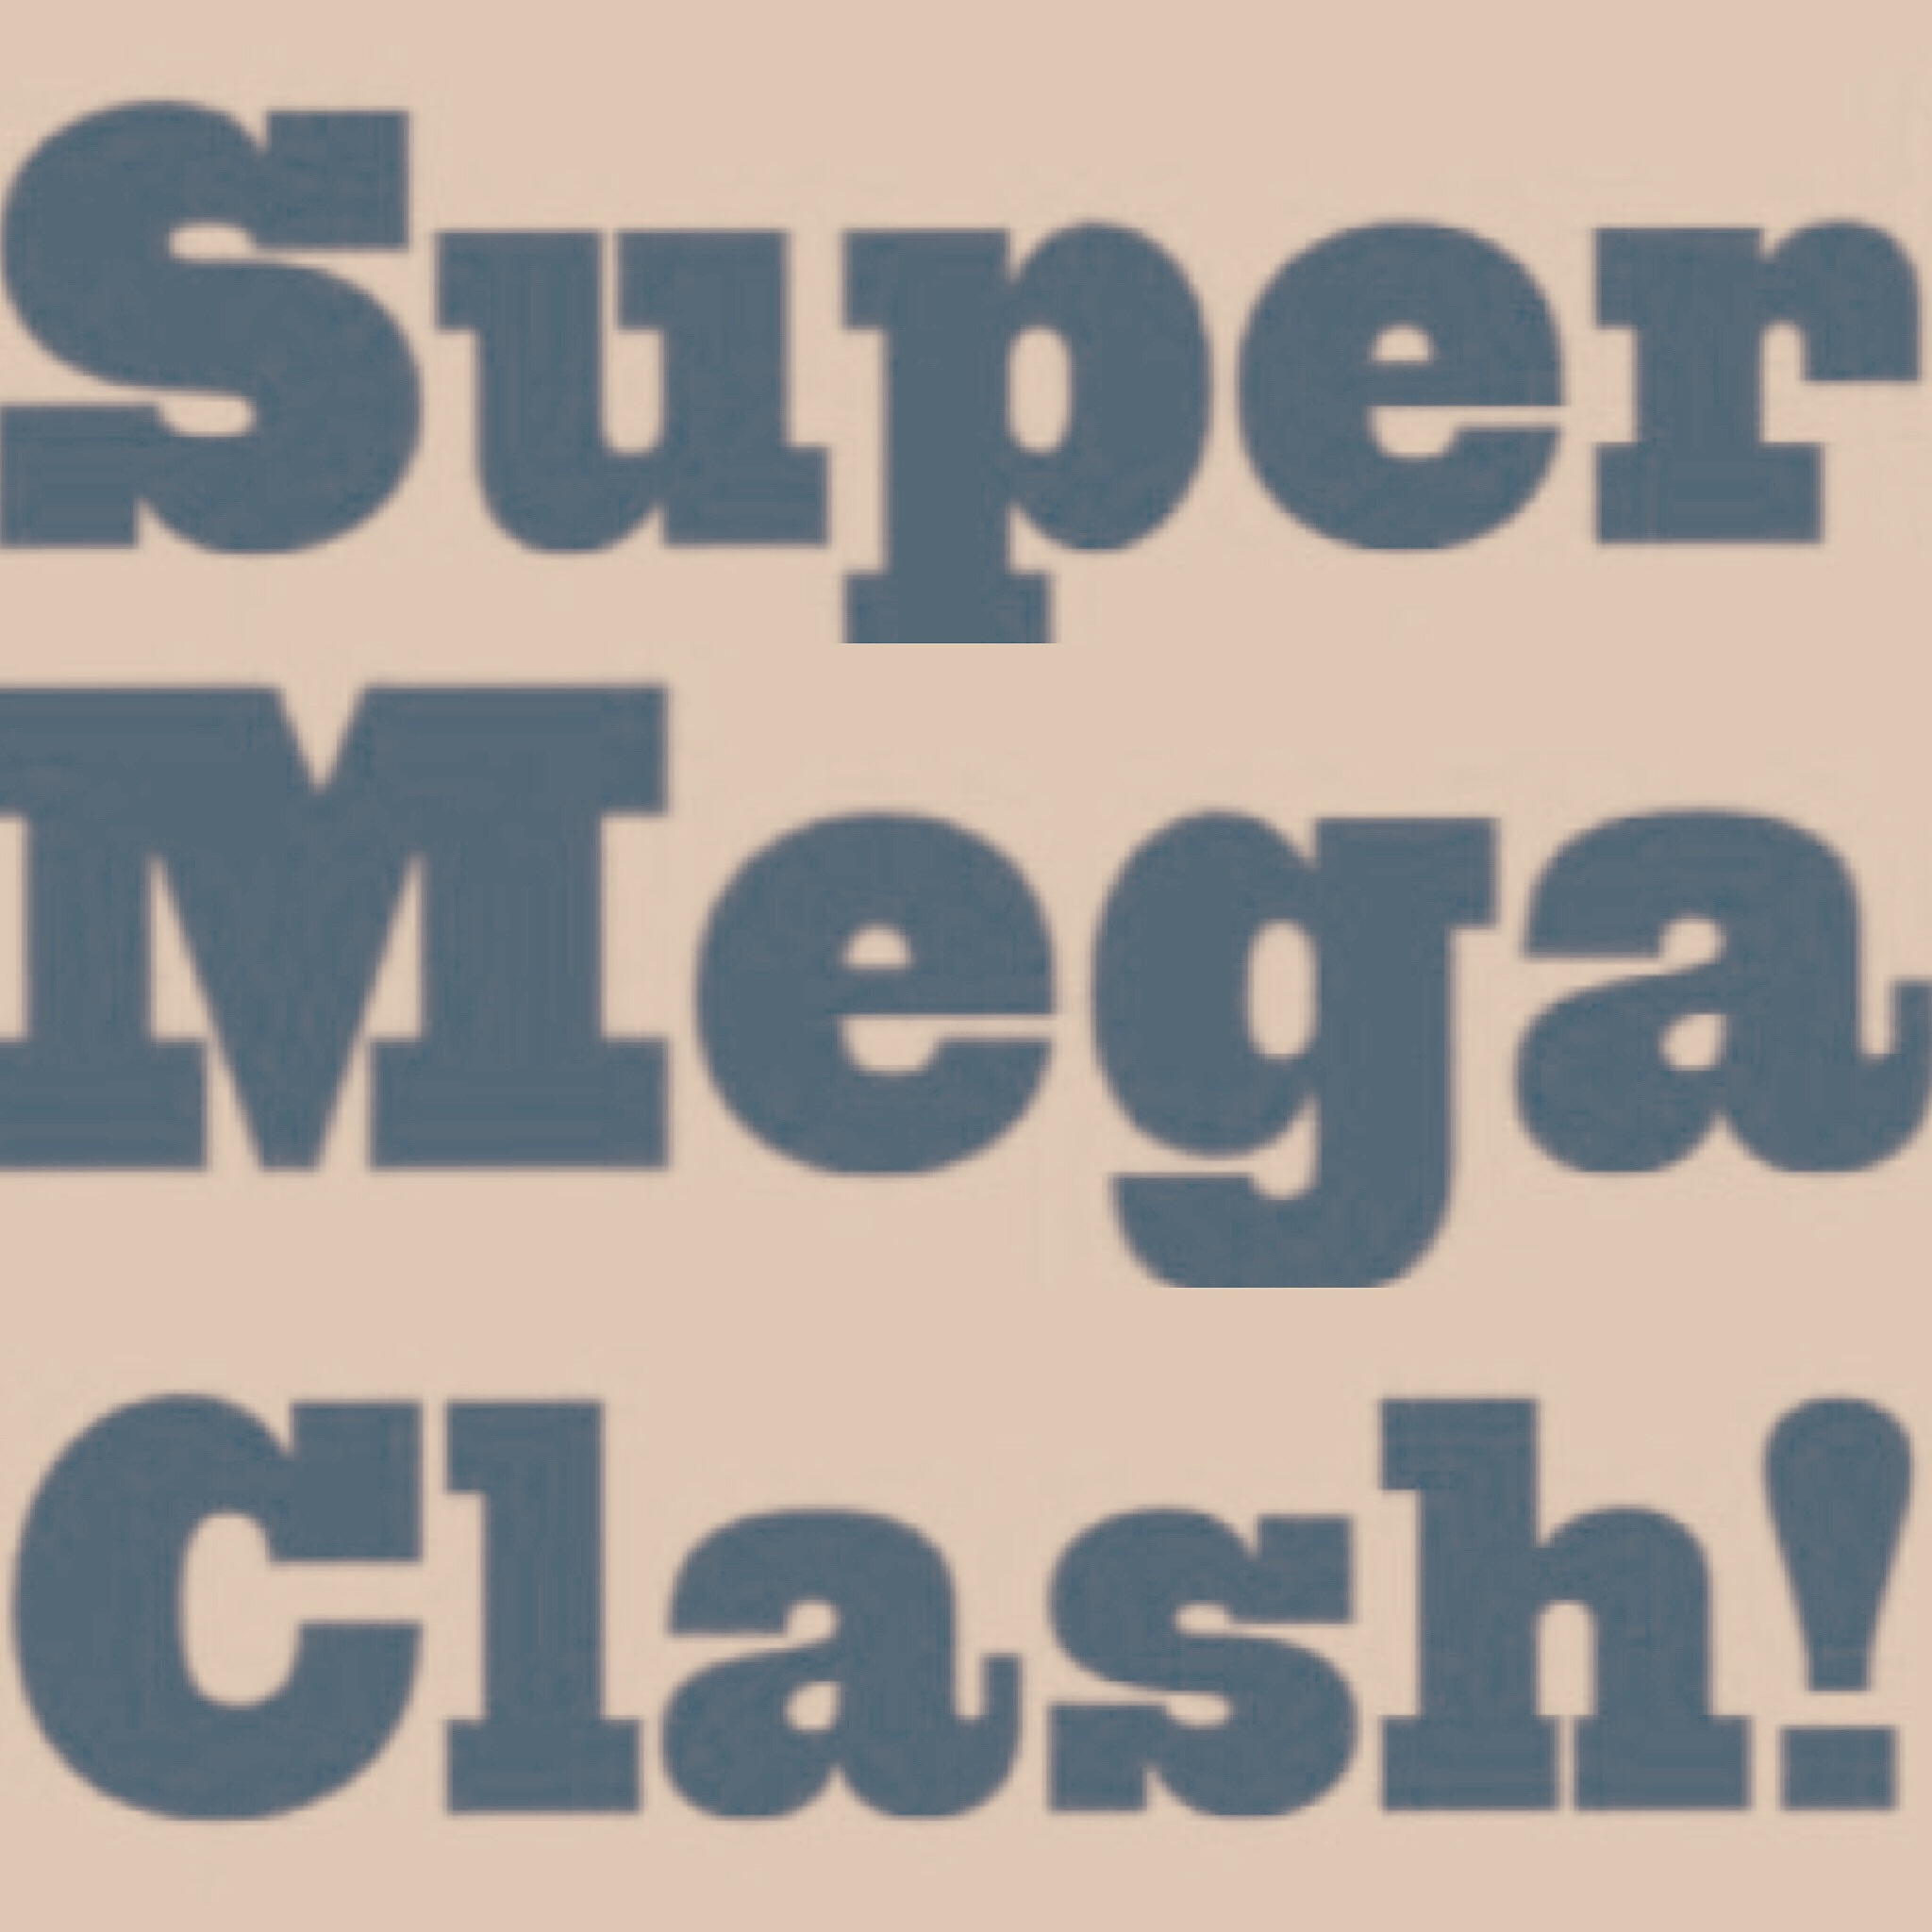 SUPERMEGACLASH!